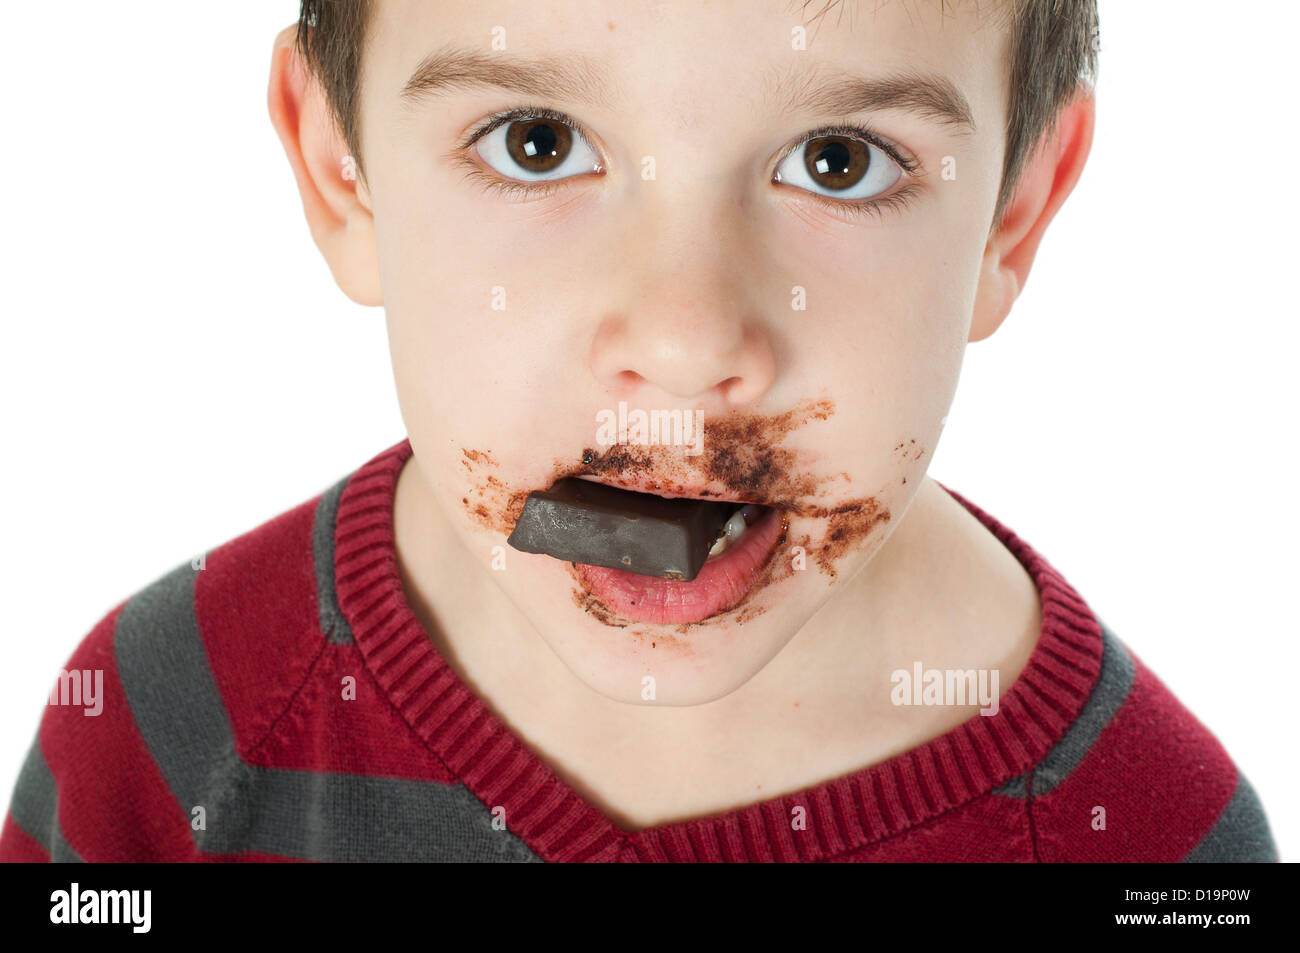 Smiling kid eating chocolate. Smeared stained with chocolate lips ...